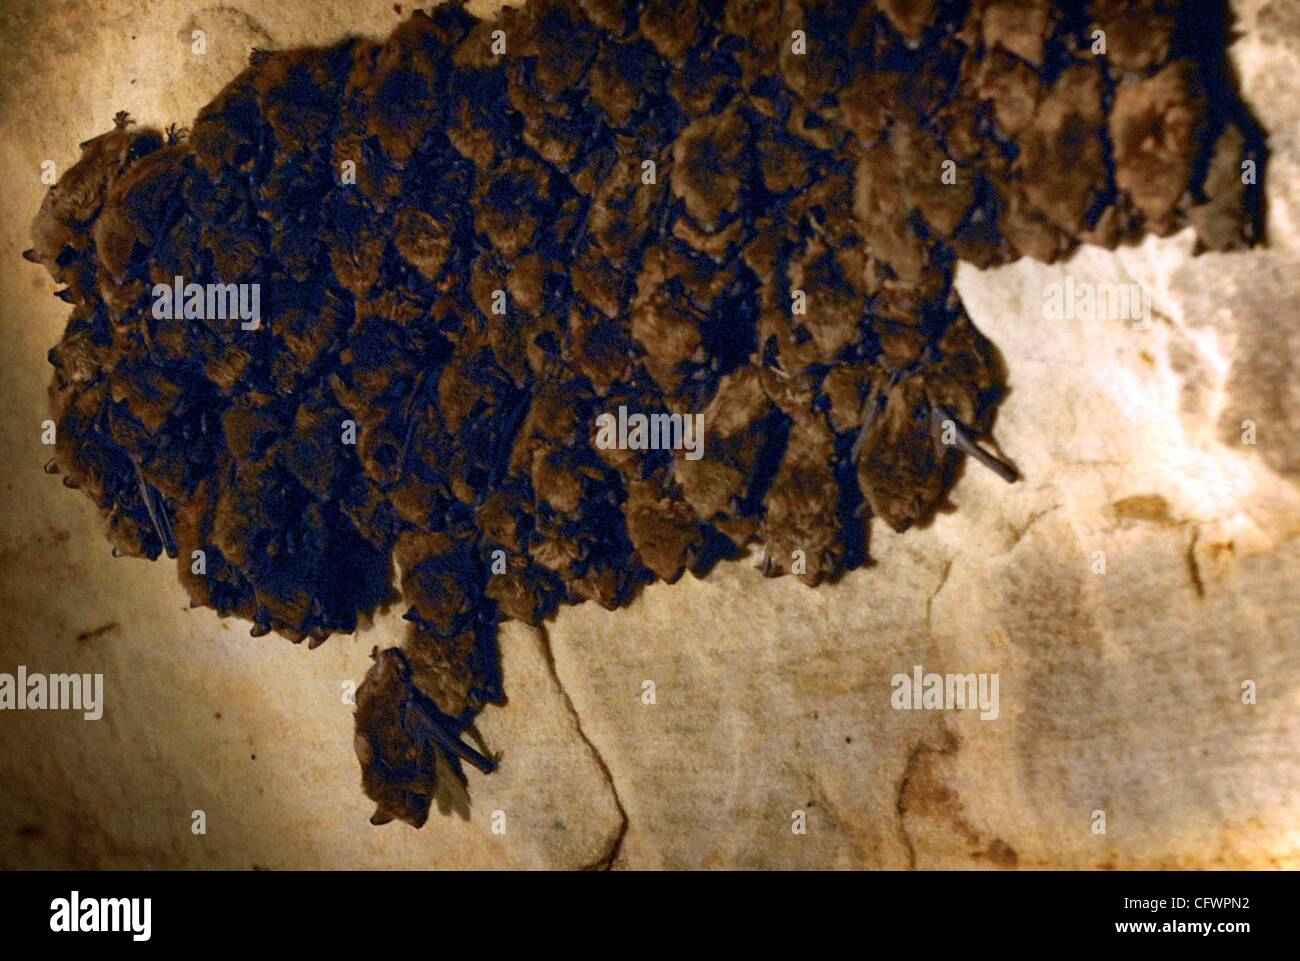 A network of tunnels in the oldest part of the mining complex provides deluxe accomodations for hibernating bats. - Stock Image